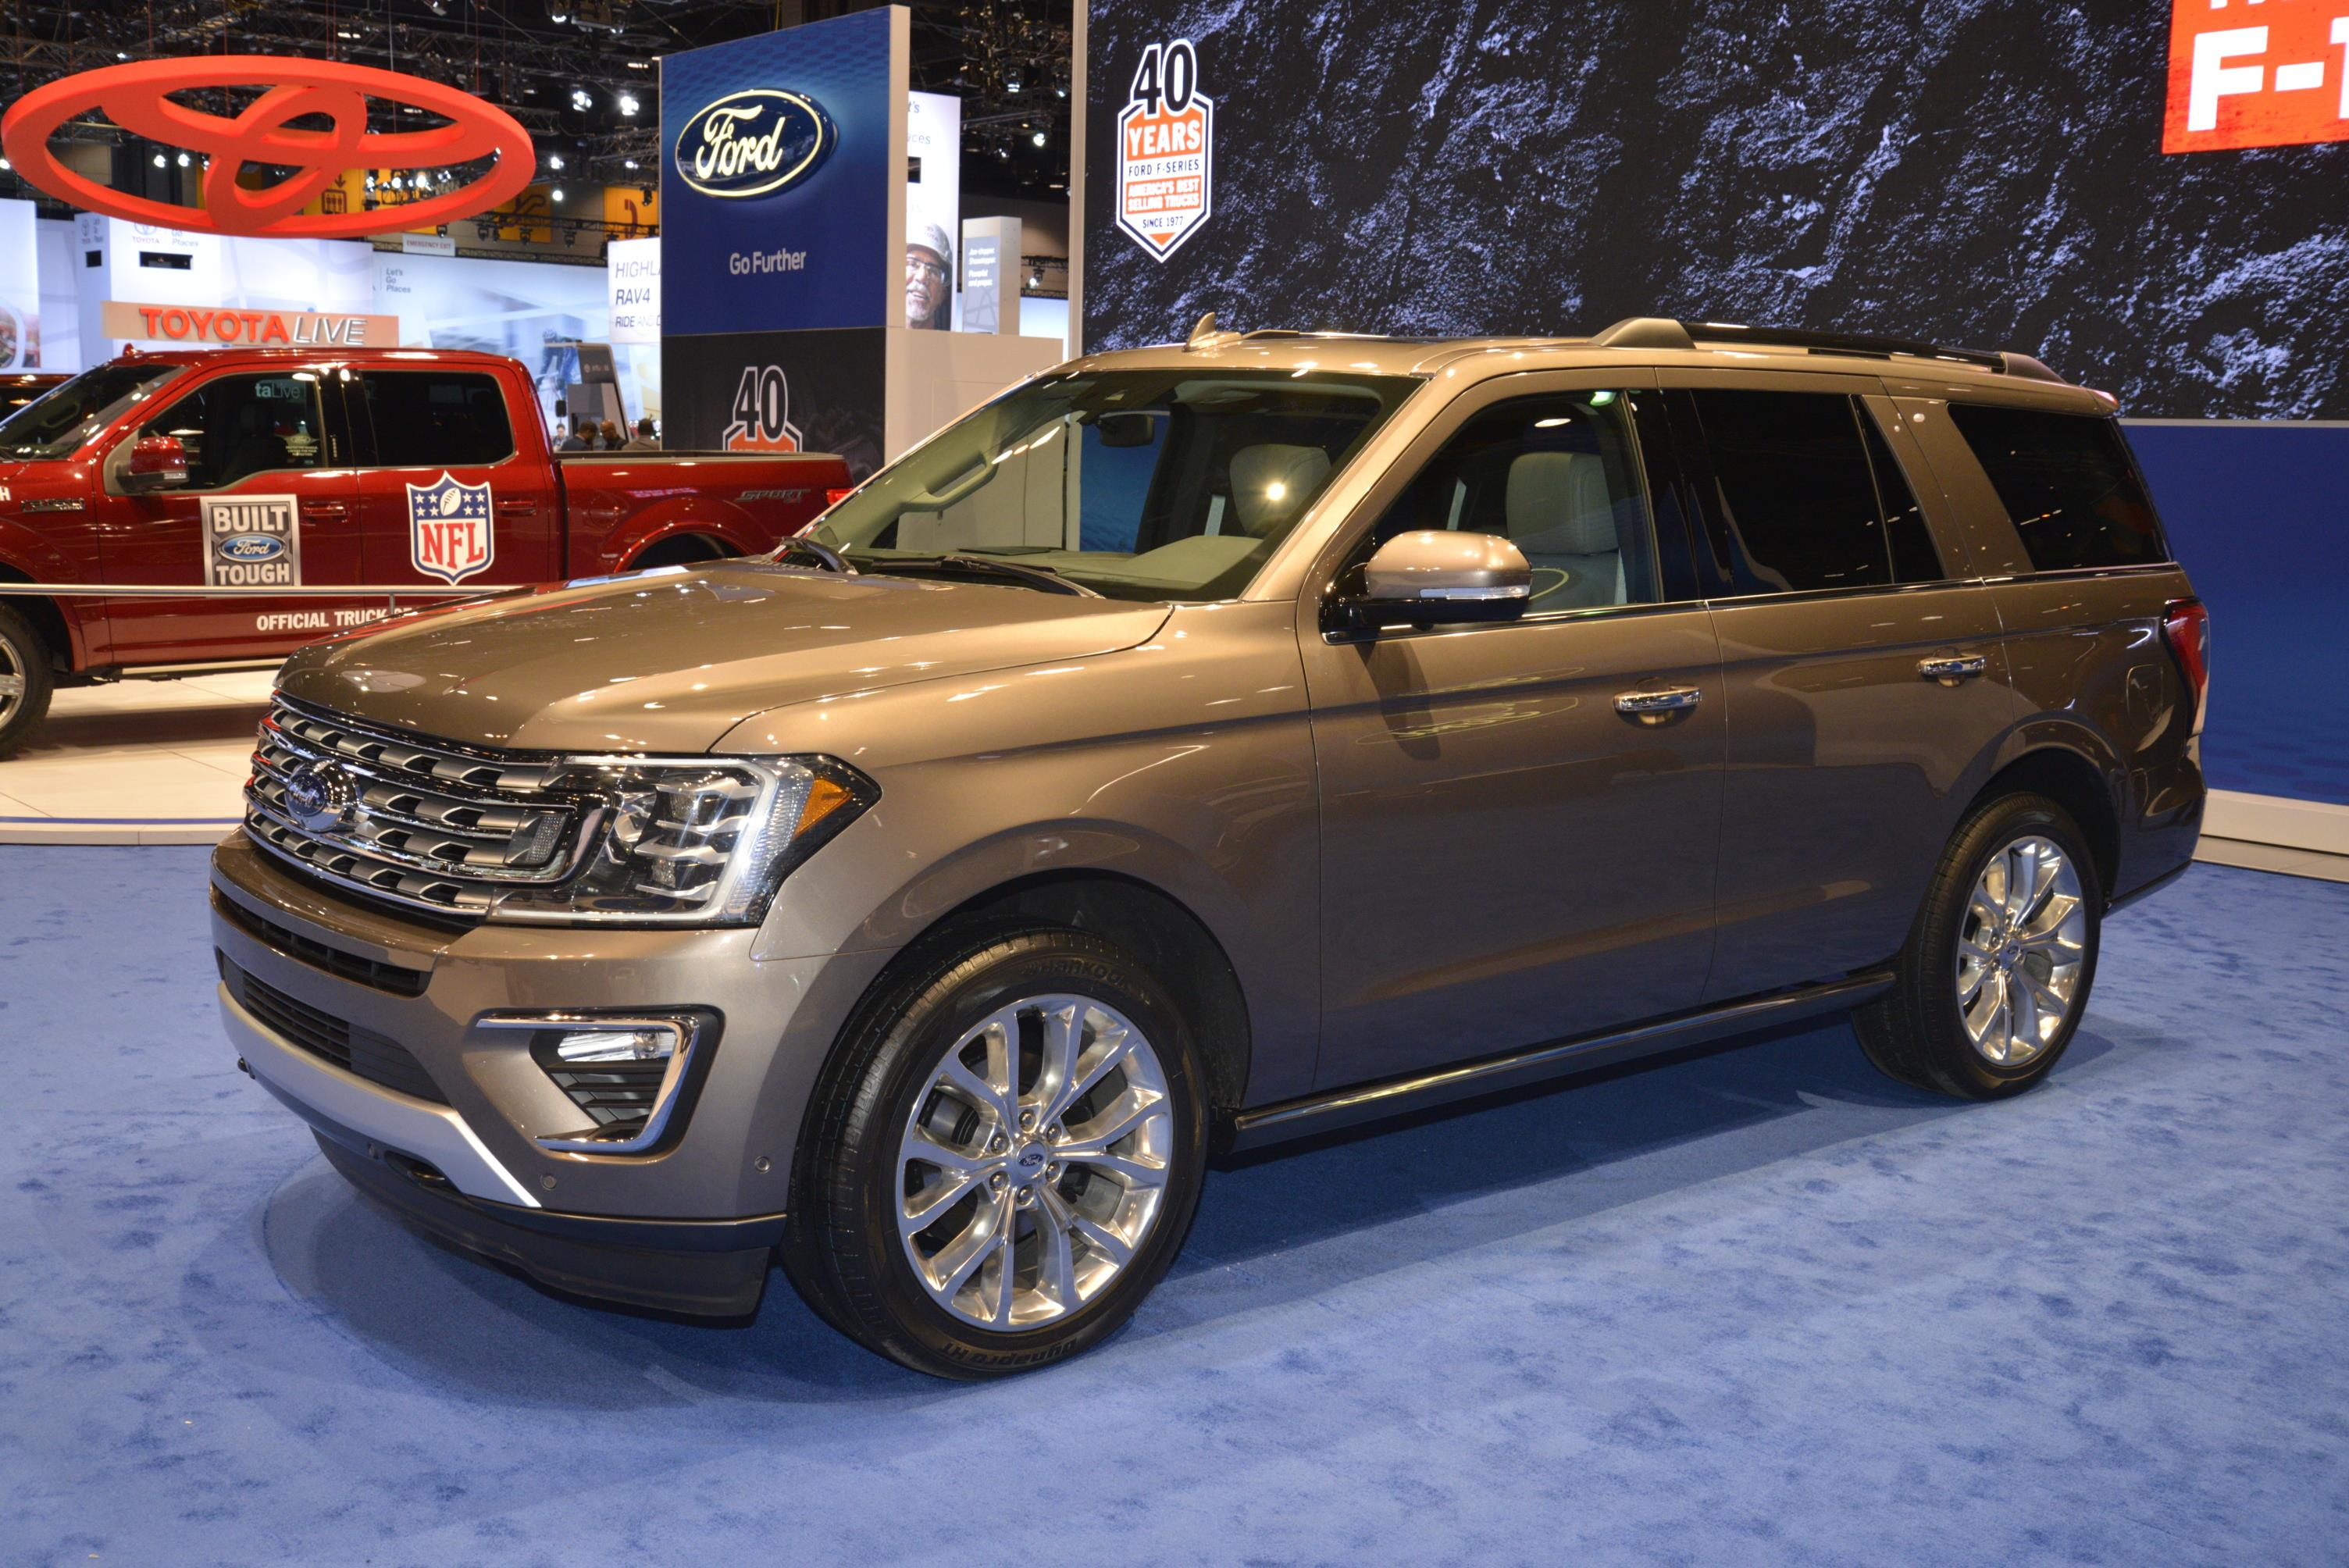 2018 Expedition is Ford's Range Rover at the Chicago Auto Show - autoevolution